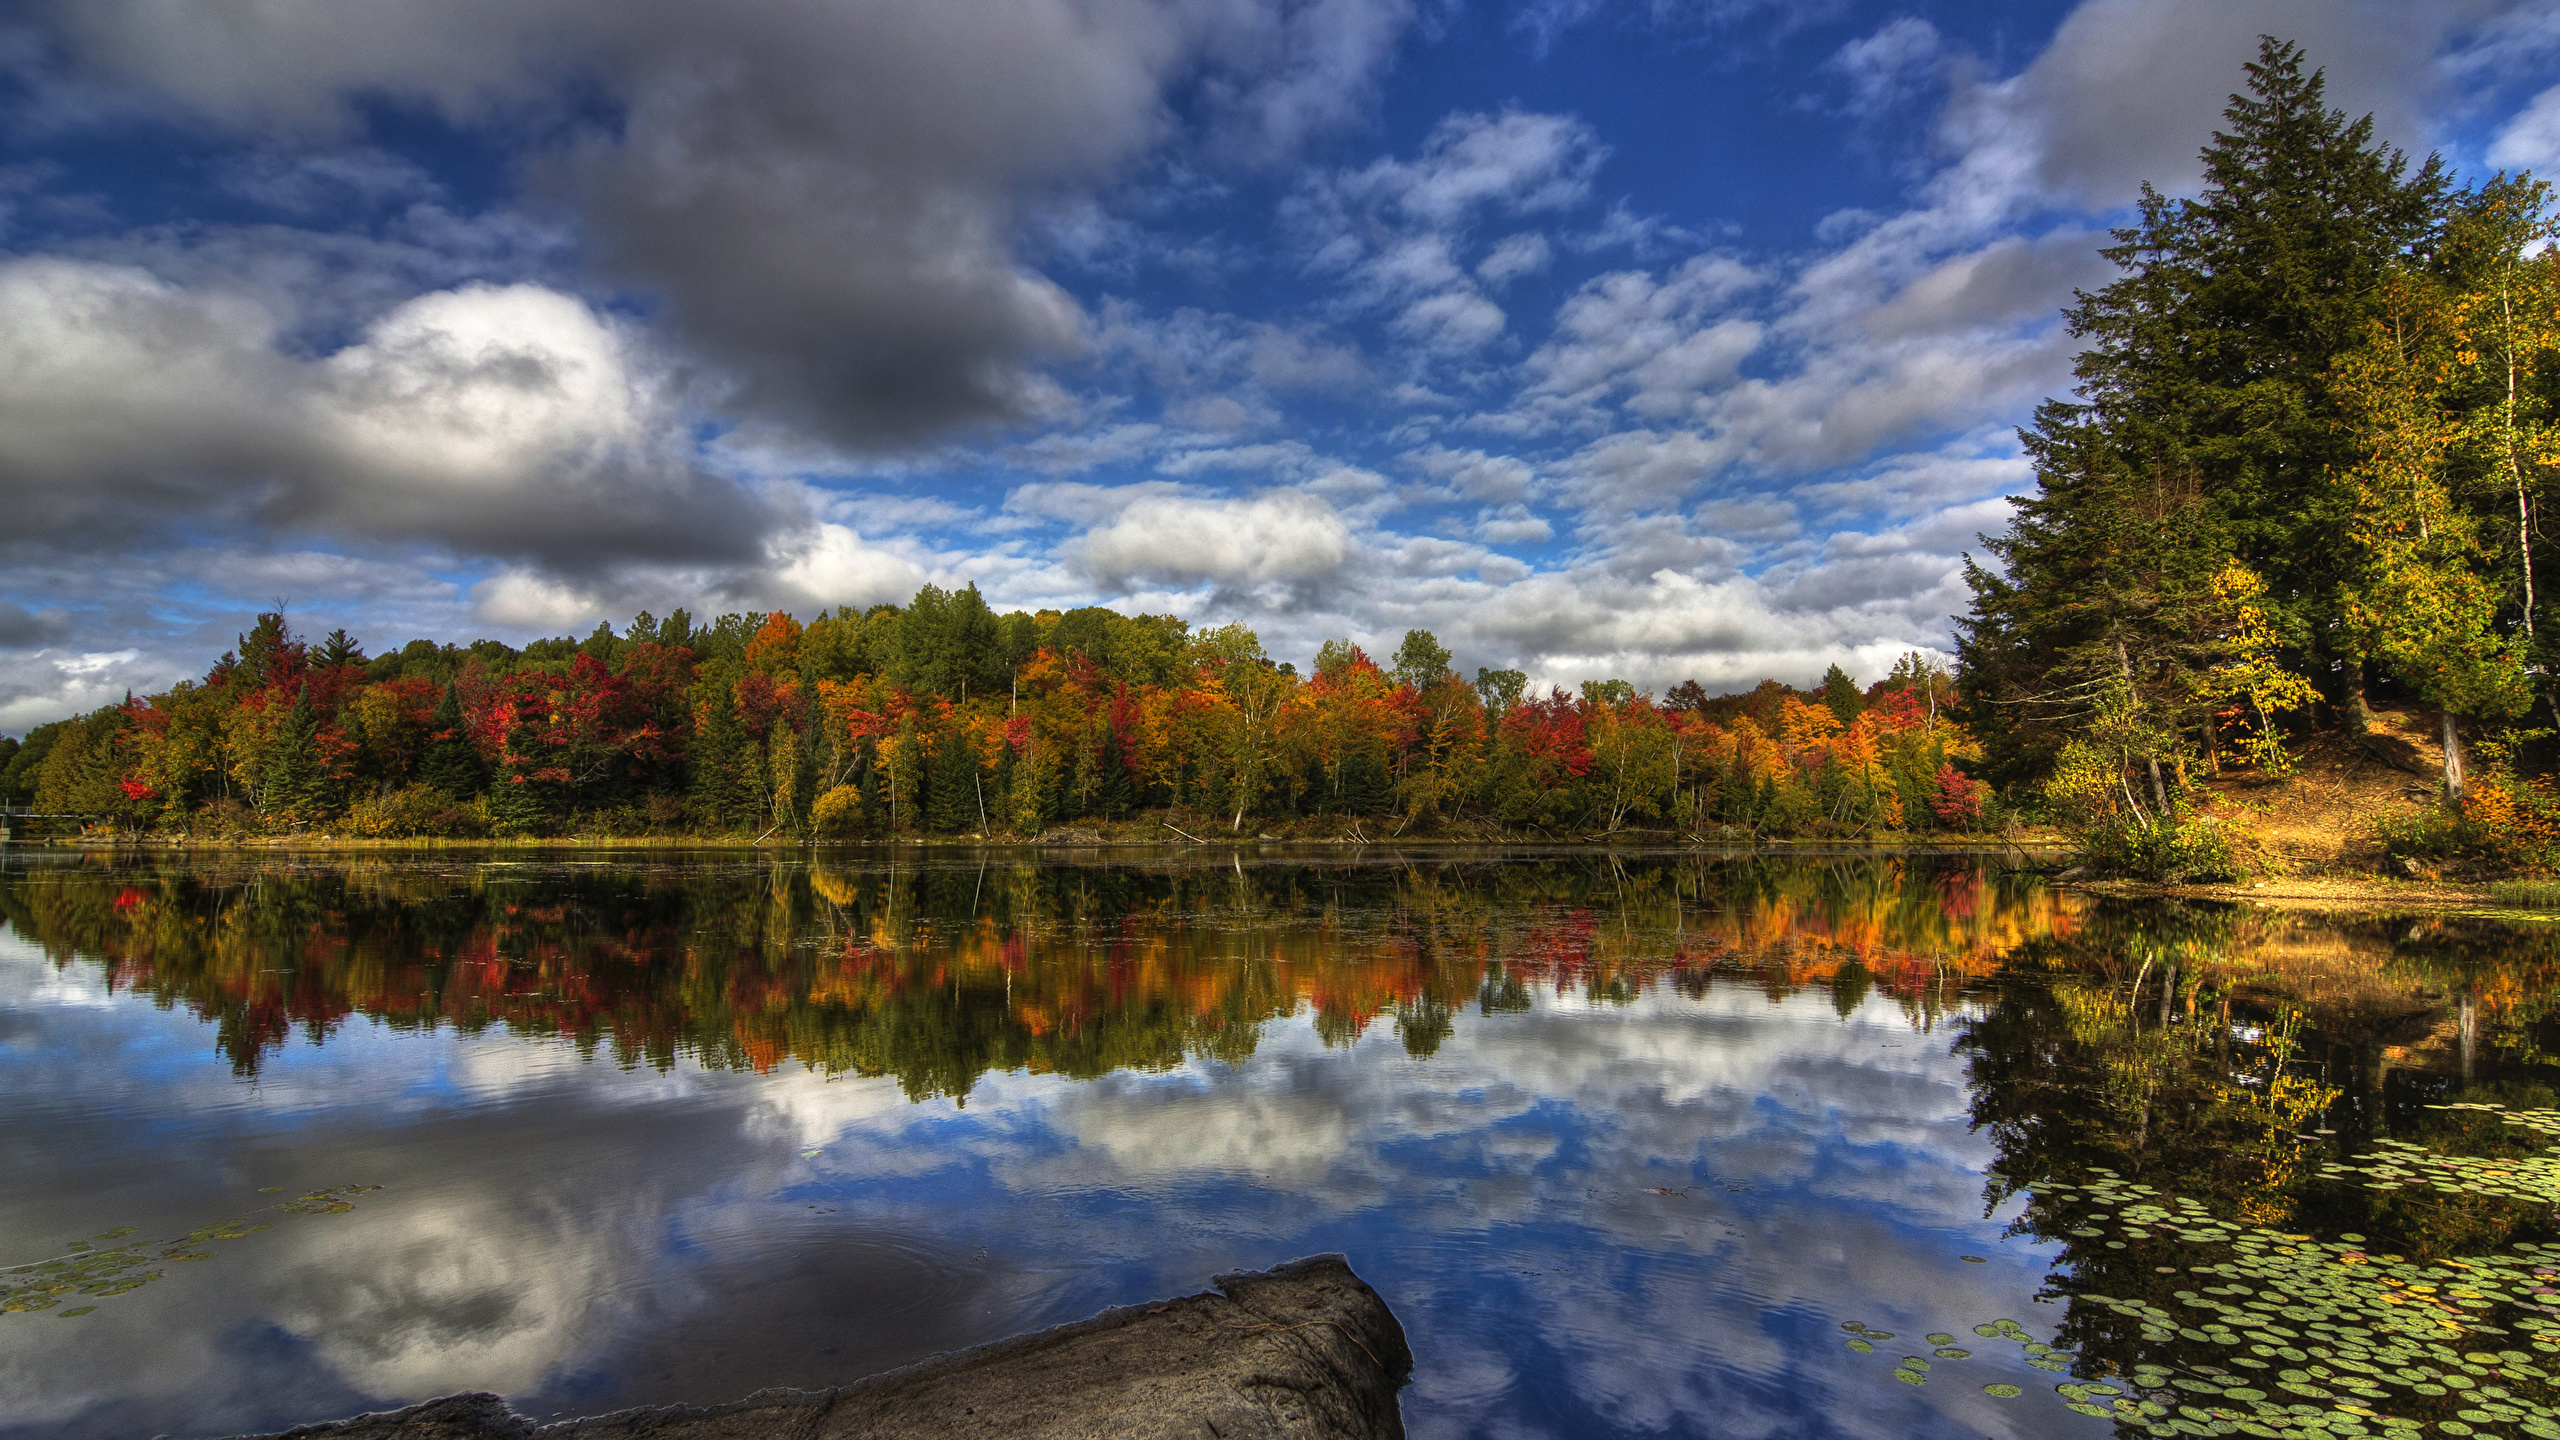 Image Nature Canada Kingsbury Autumn Reflected Sky Clouds